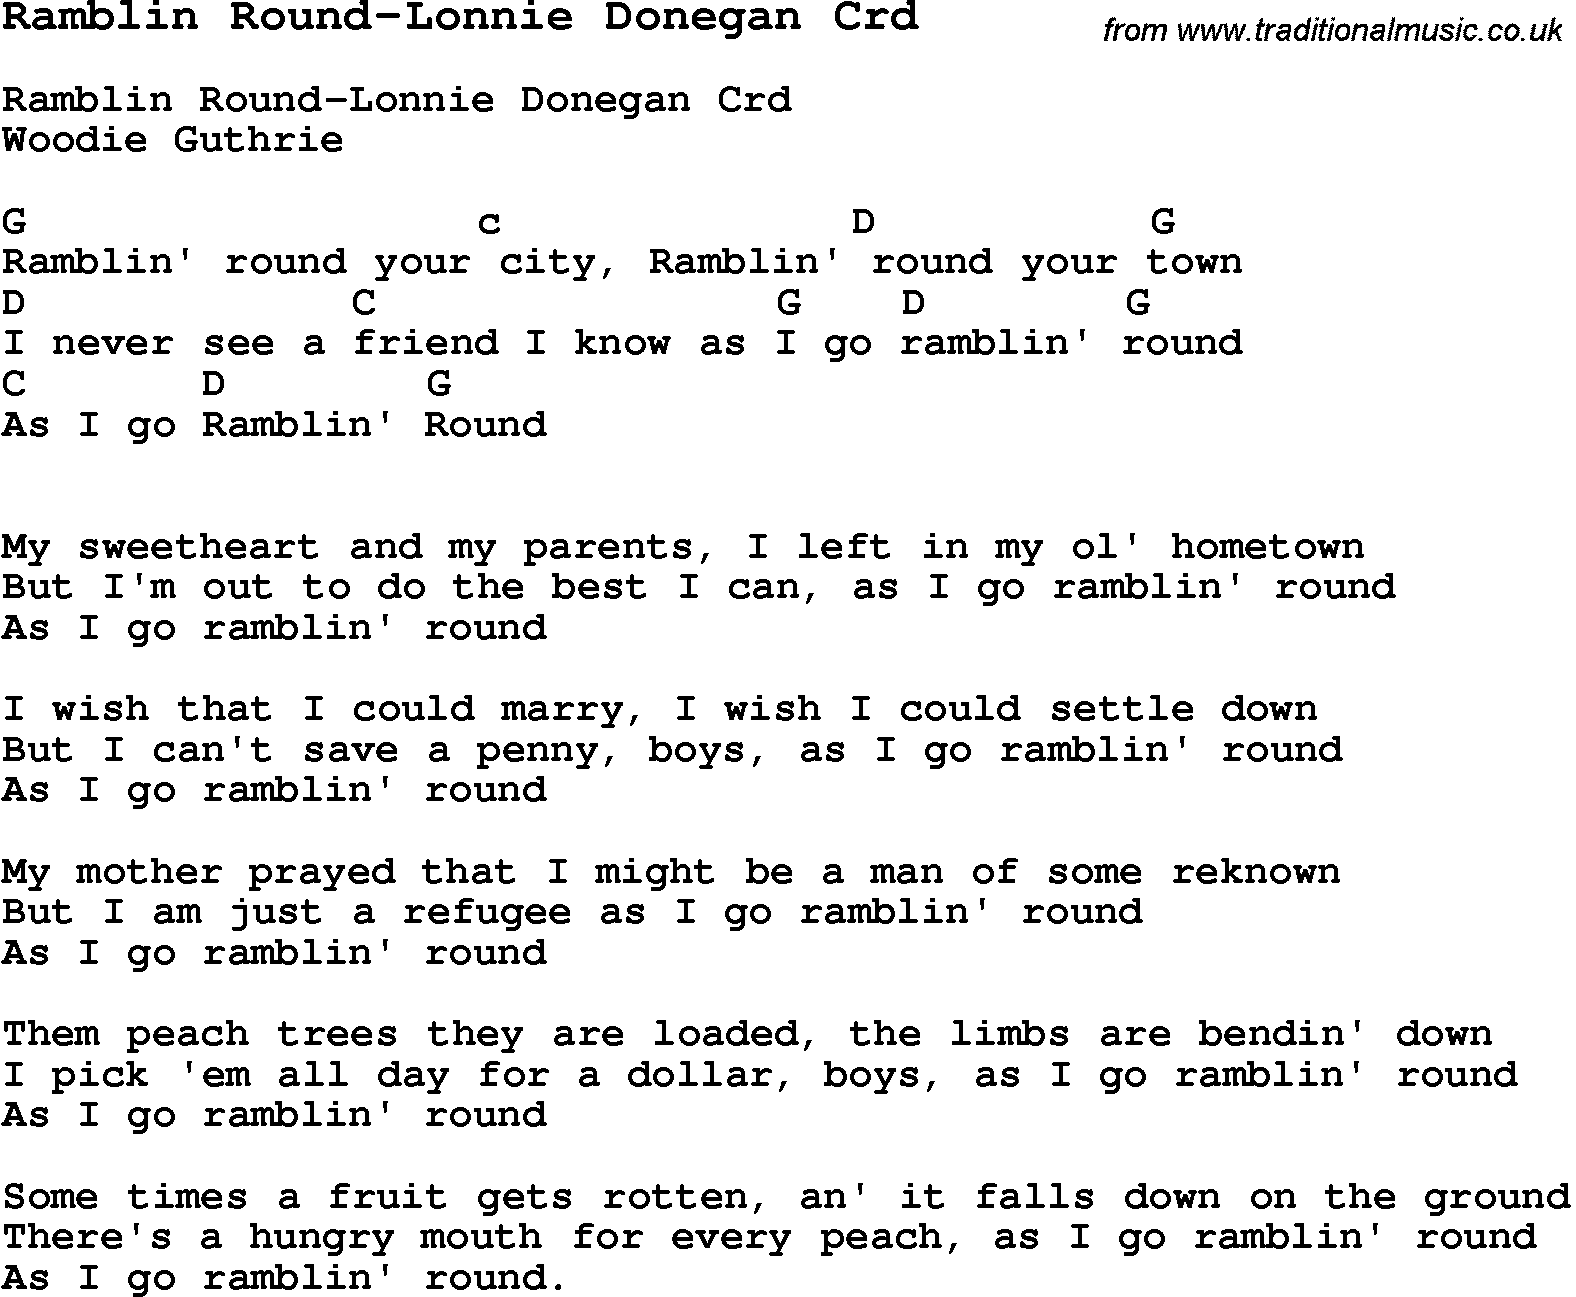 Skiffle Lyrics For Ramblin Round Lonnie Donegan With Chords For